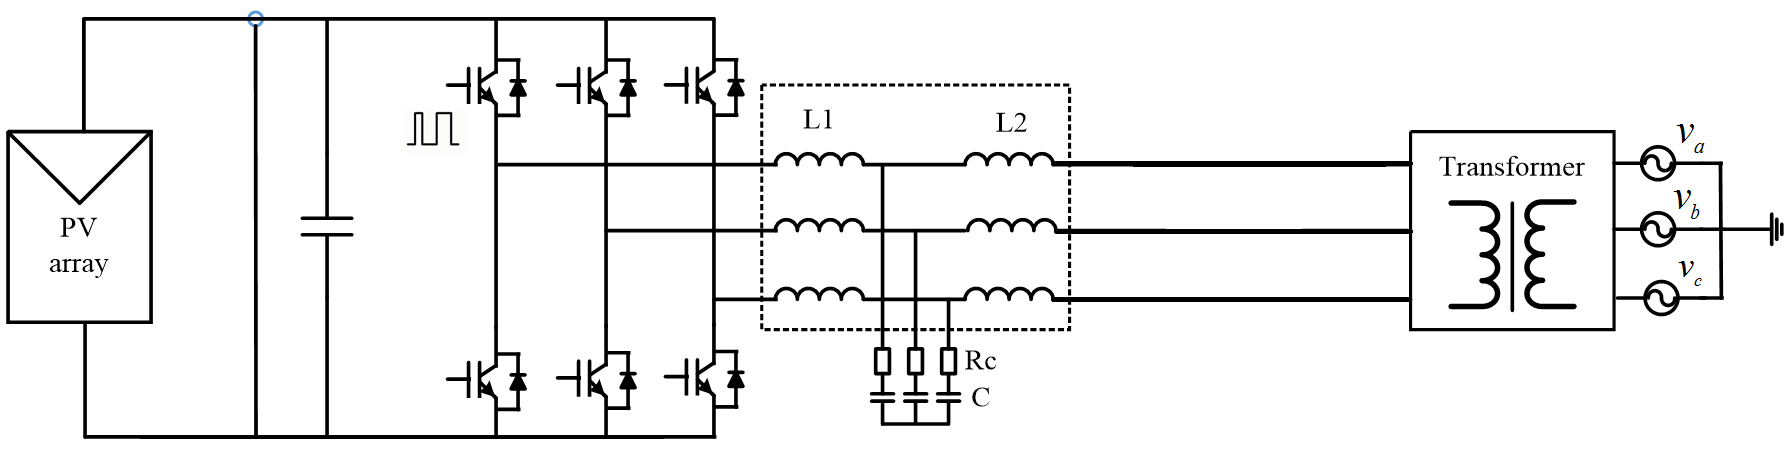 Switching model of three-phase PV inverter